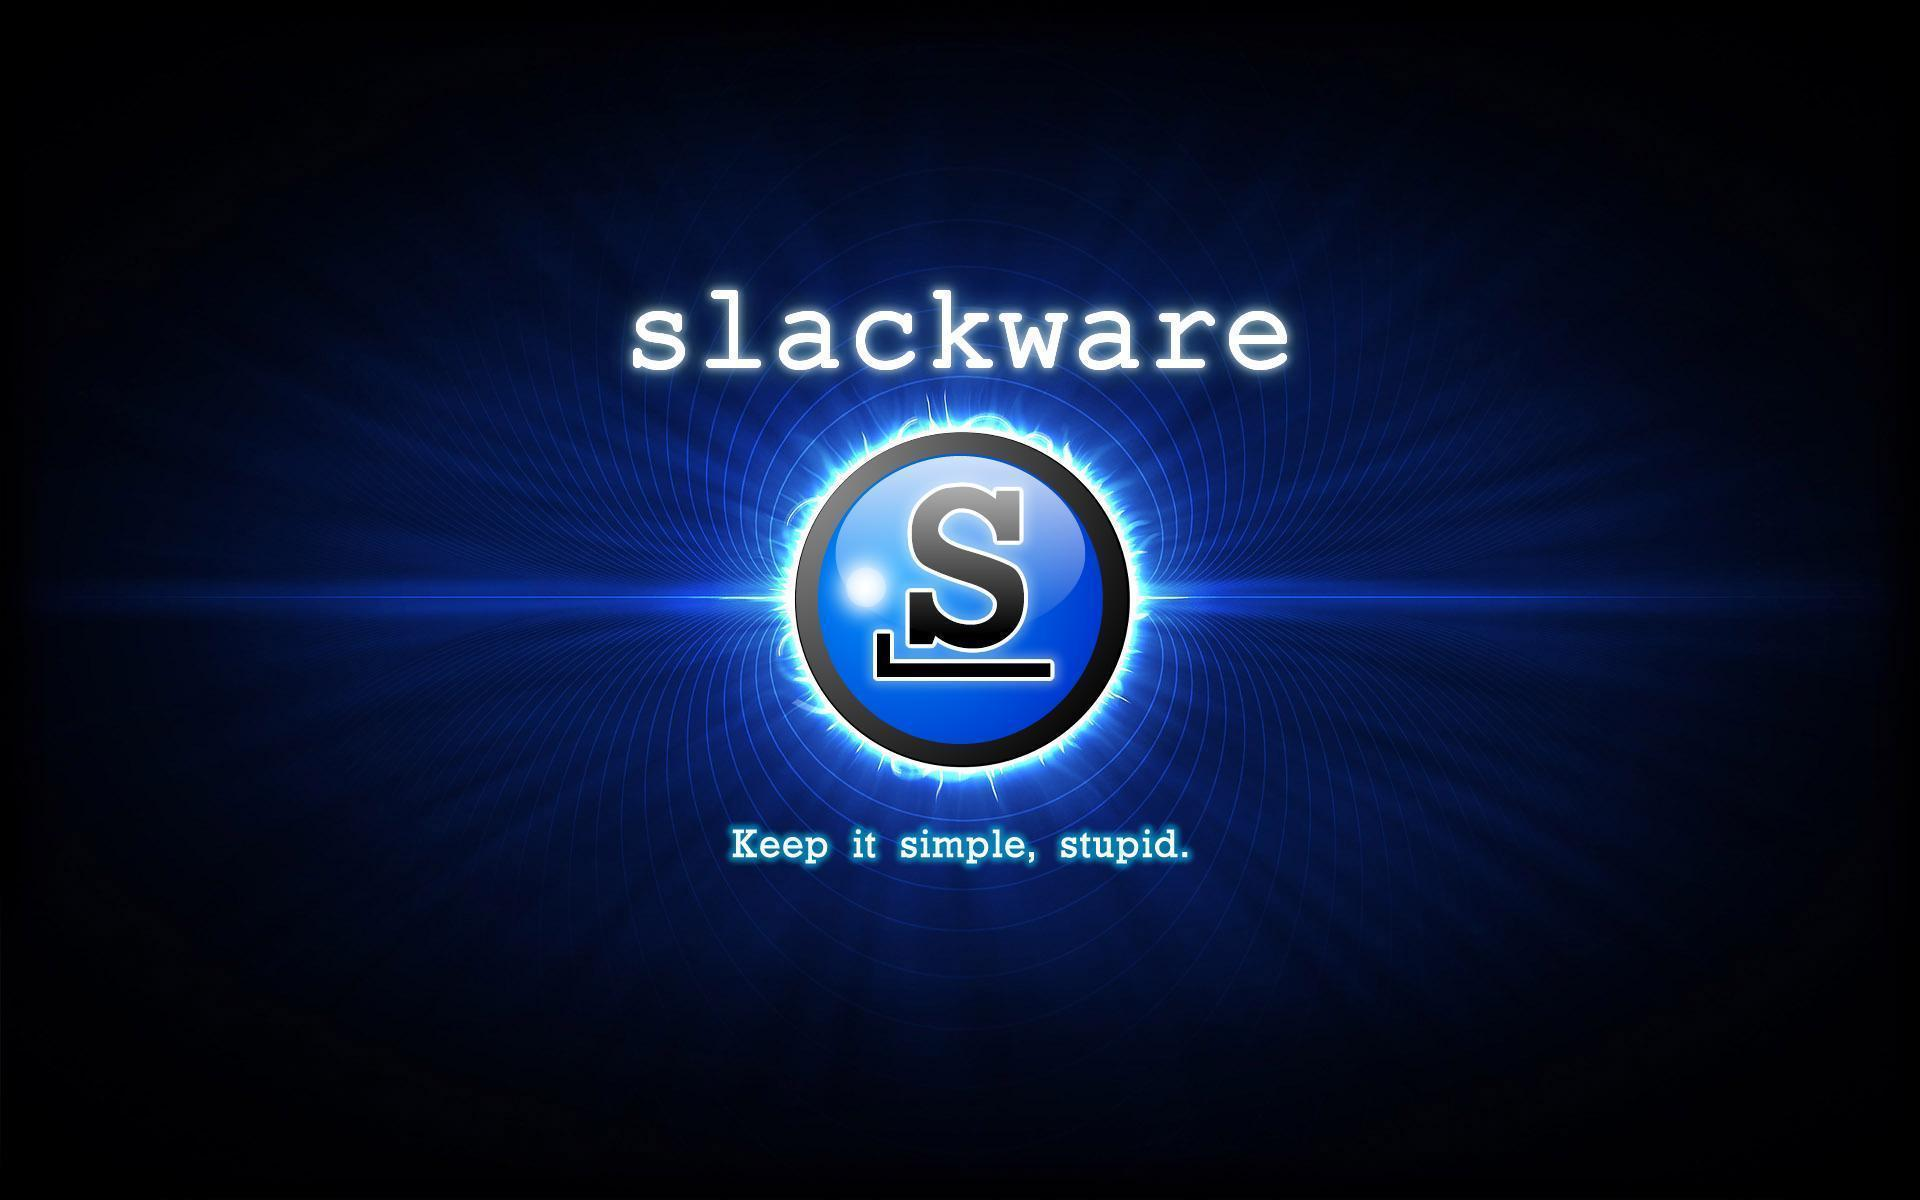 Slackware Wallpapers - Full HD wallpaper search